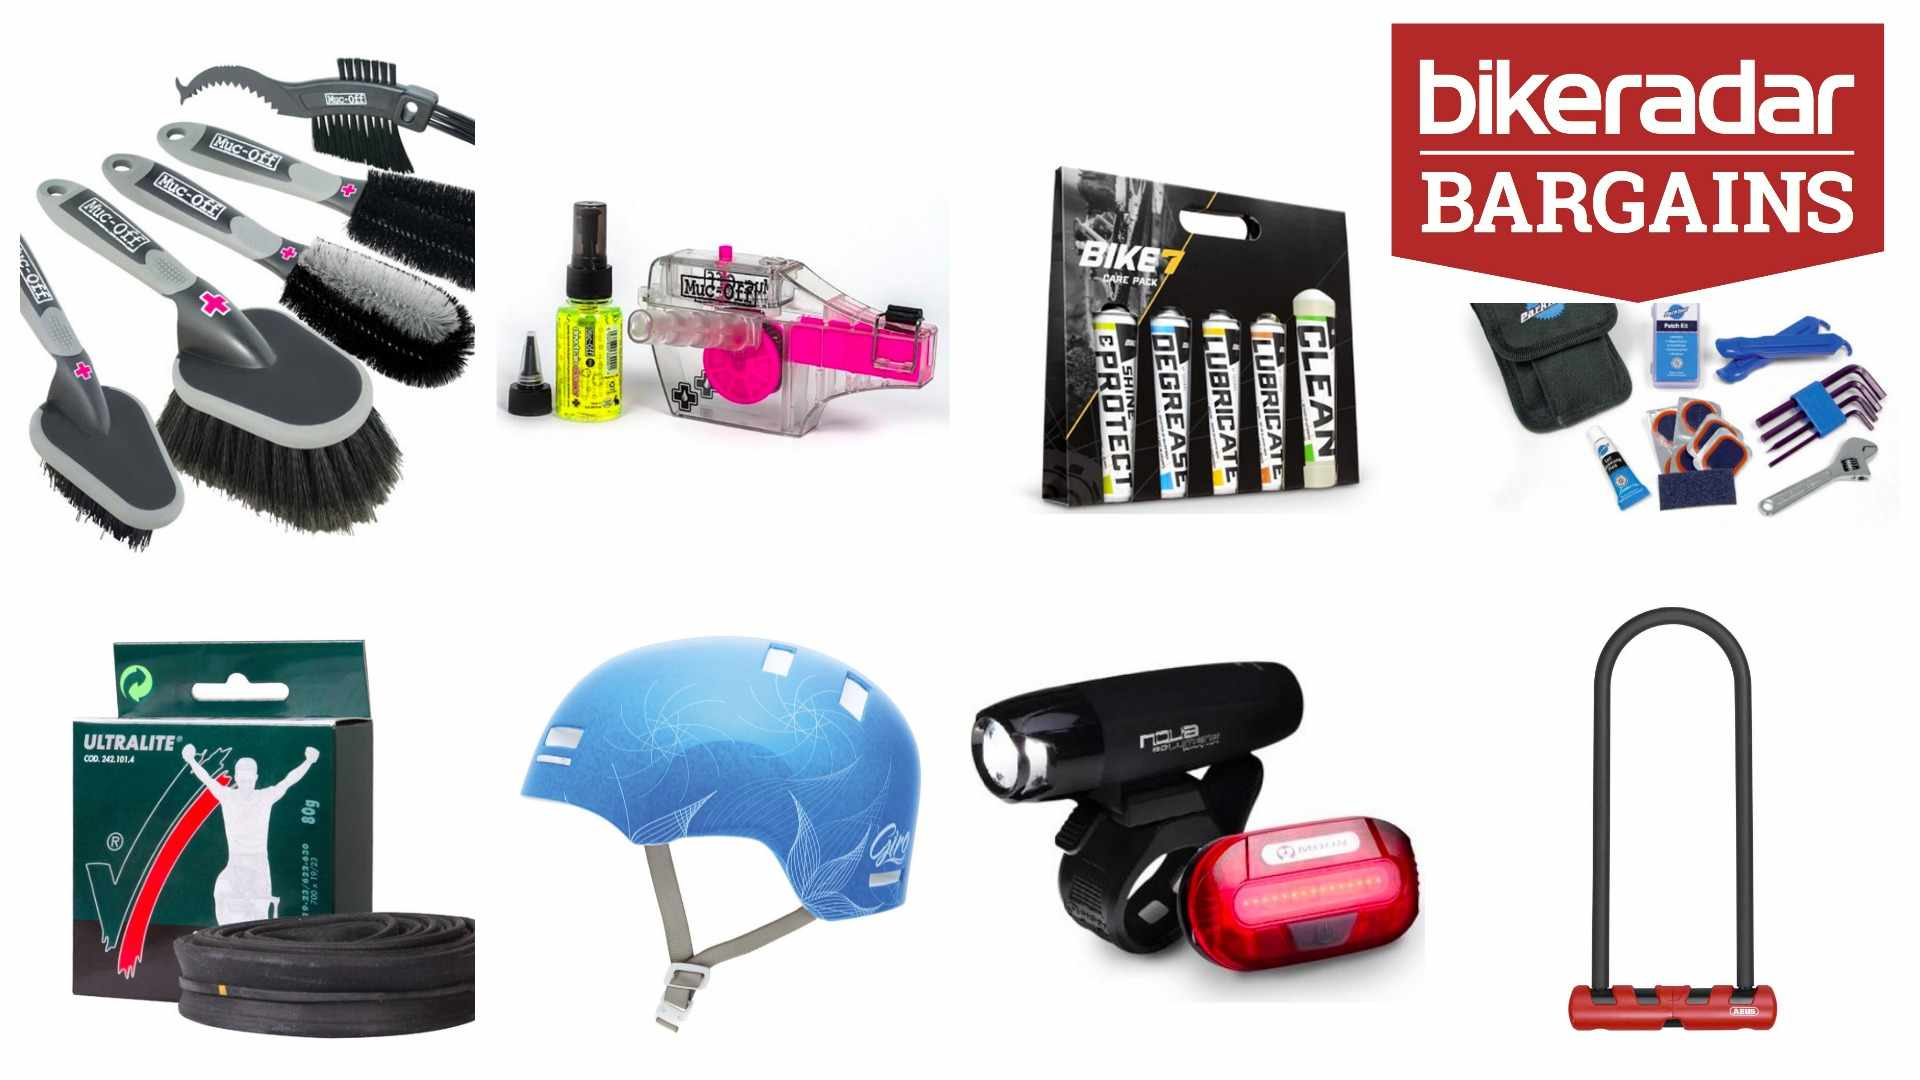 BikeRadar Bargains - 10 treats under £20